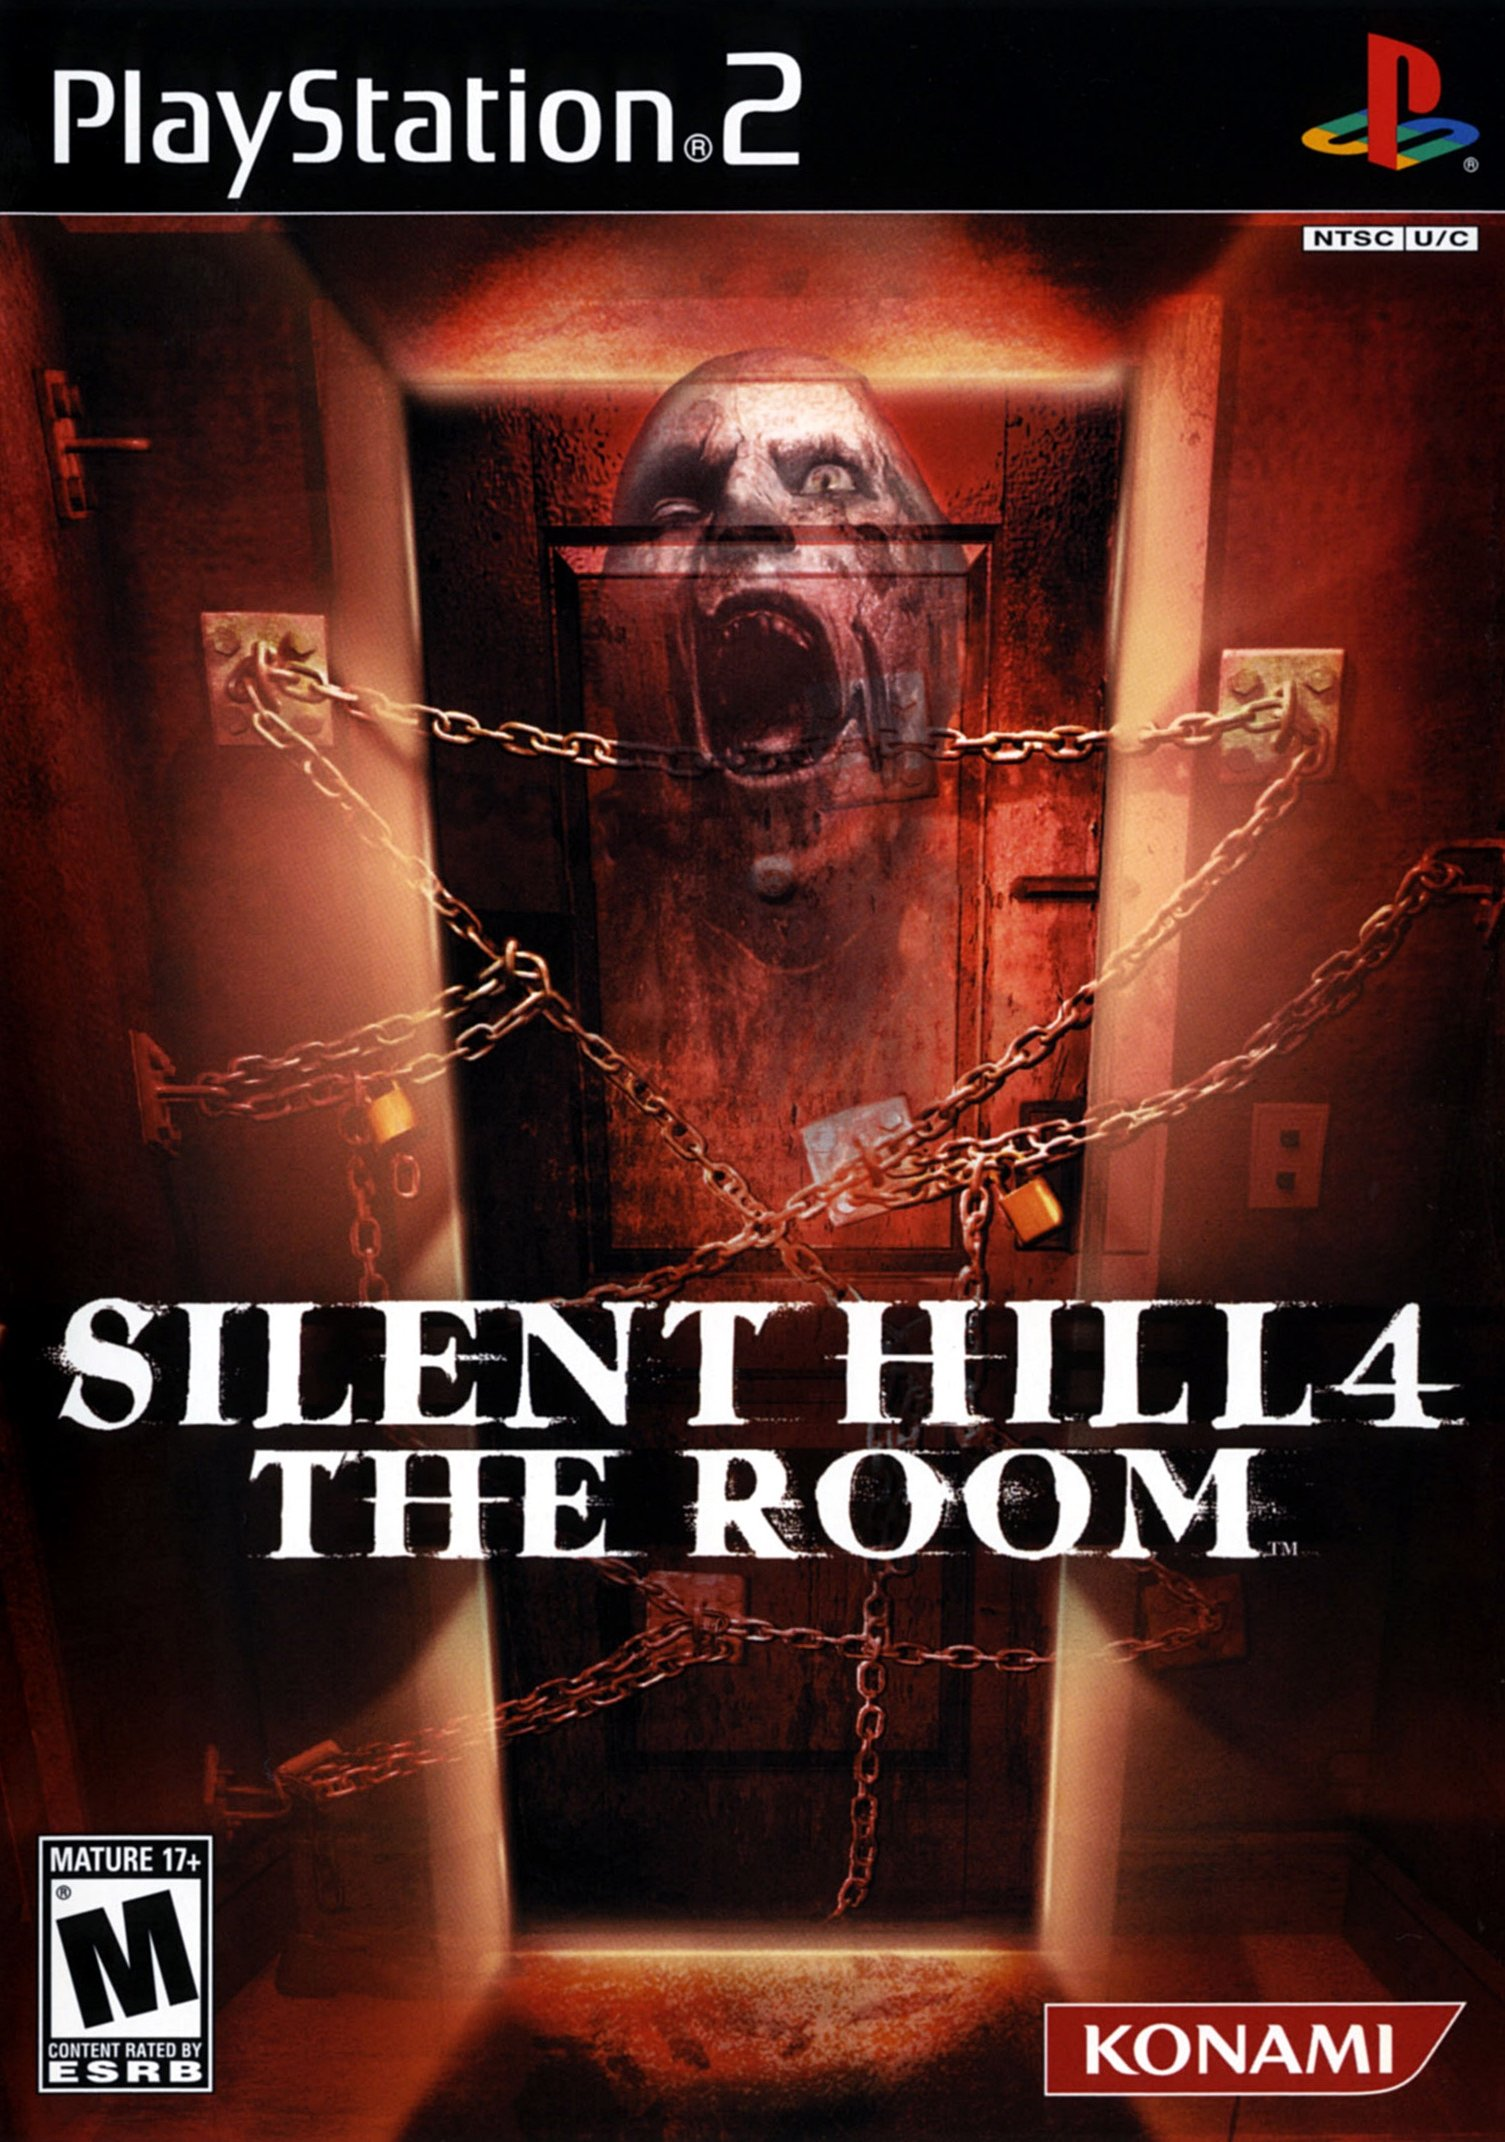 Silent Hill 4: The Room - PCSX2 Wiki